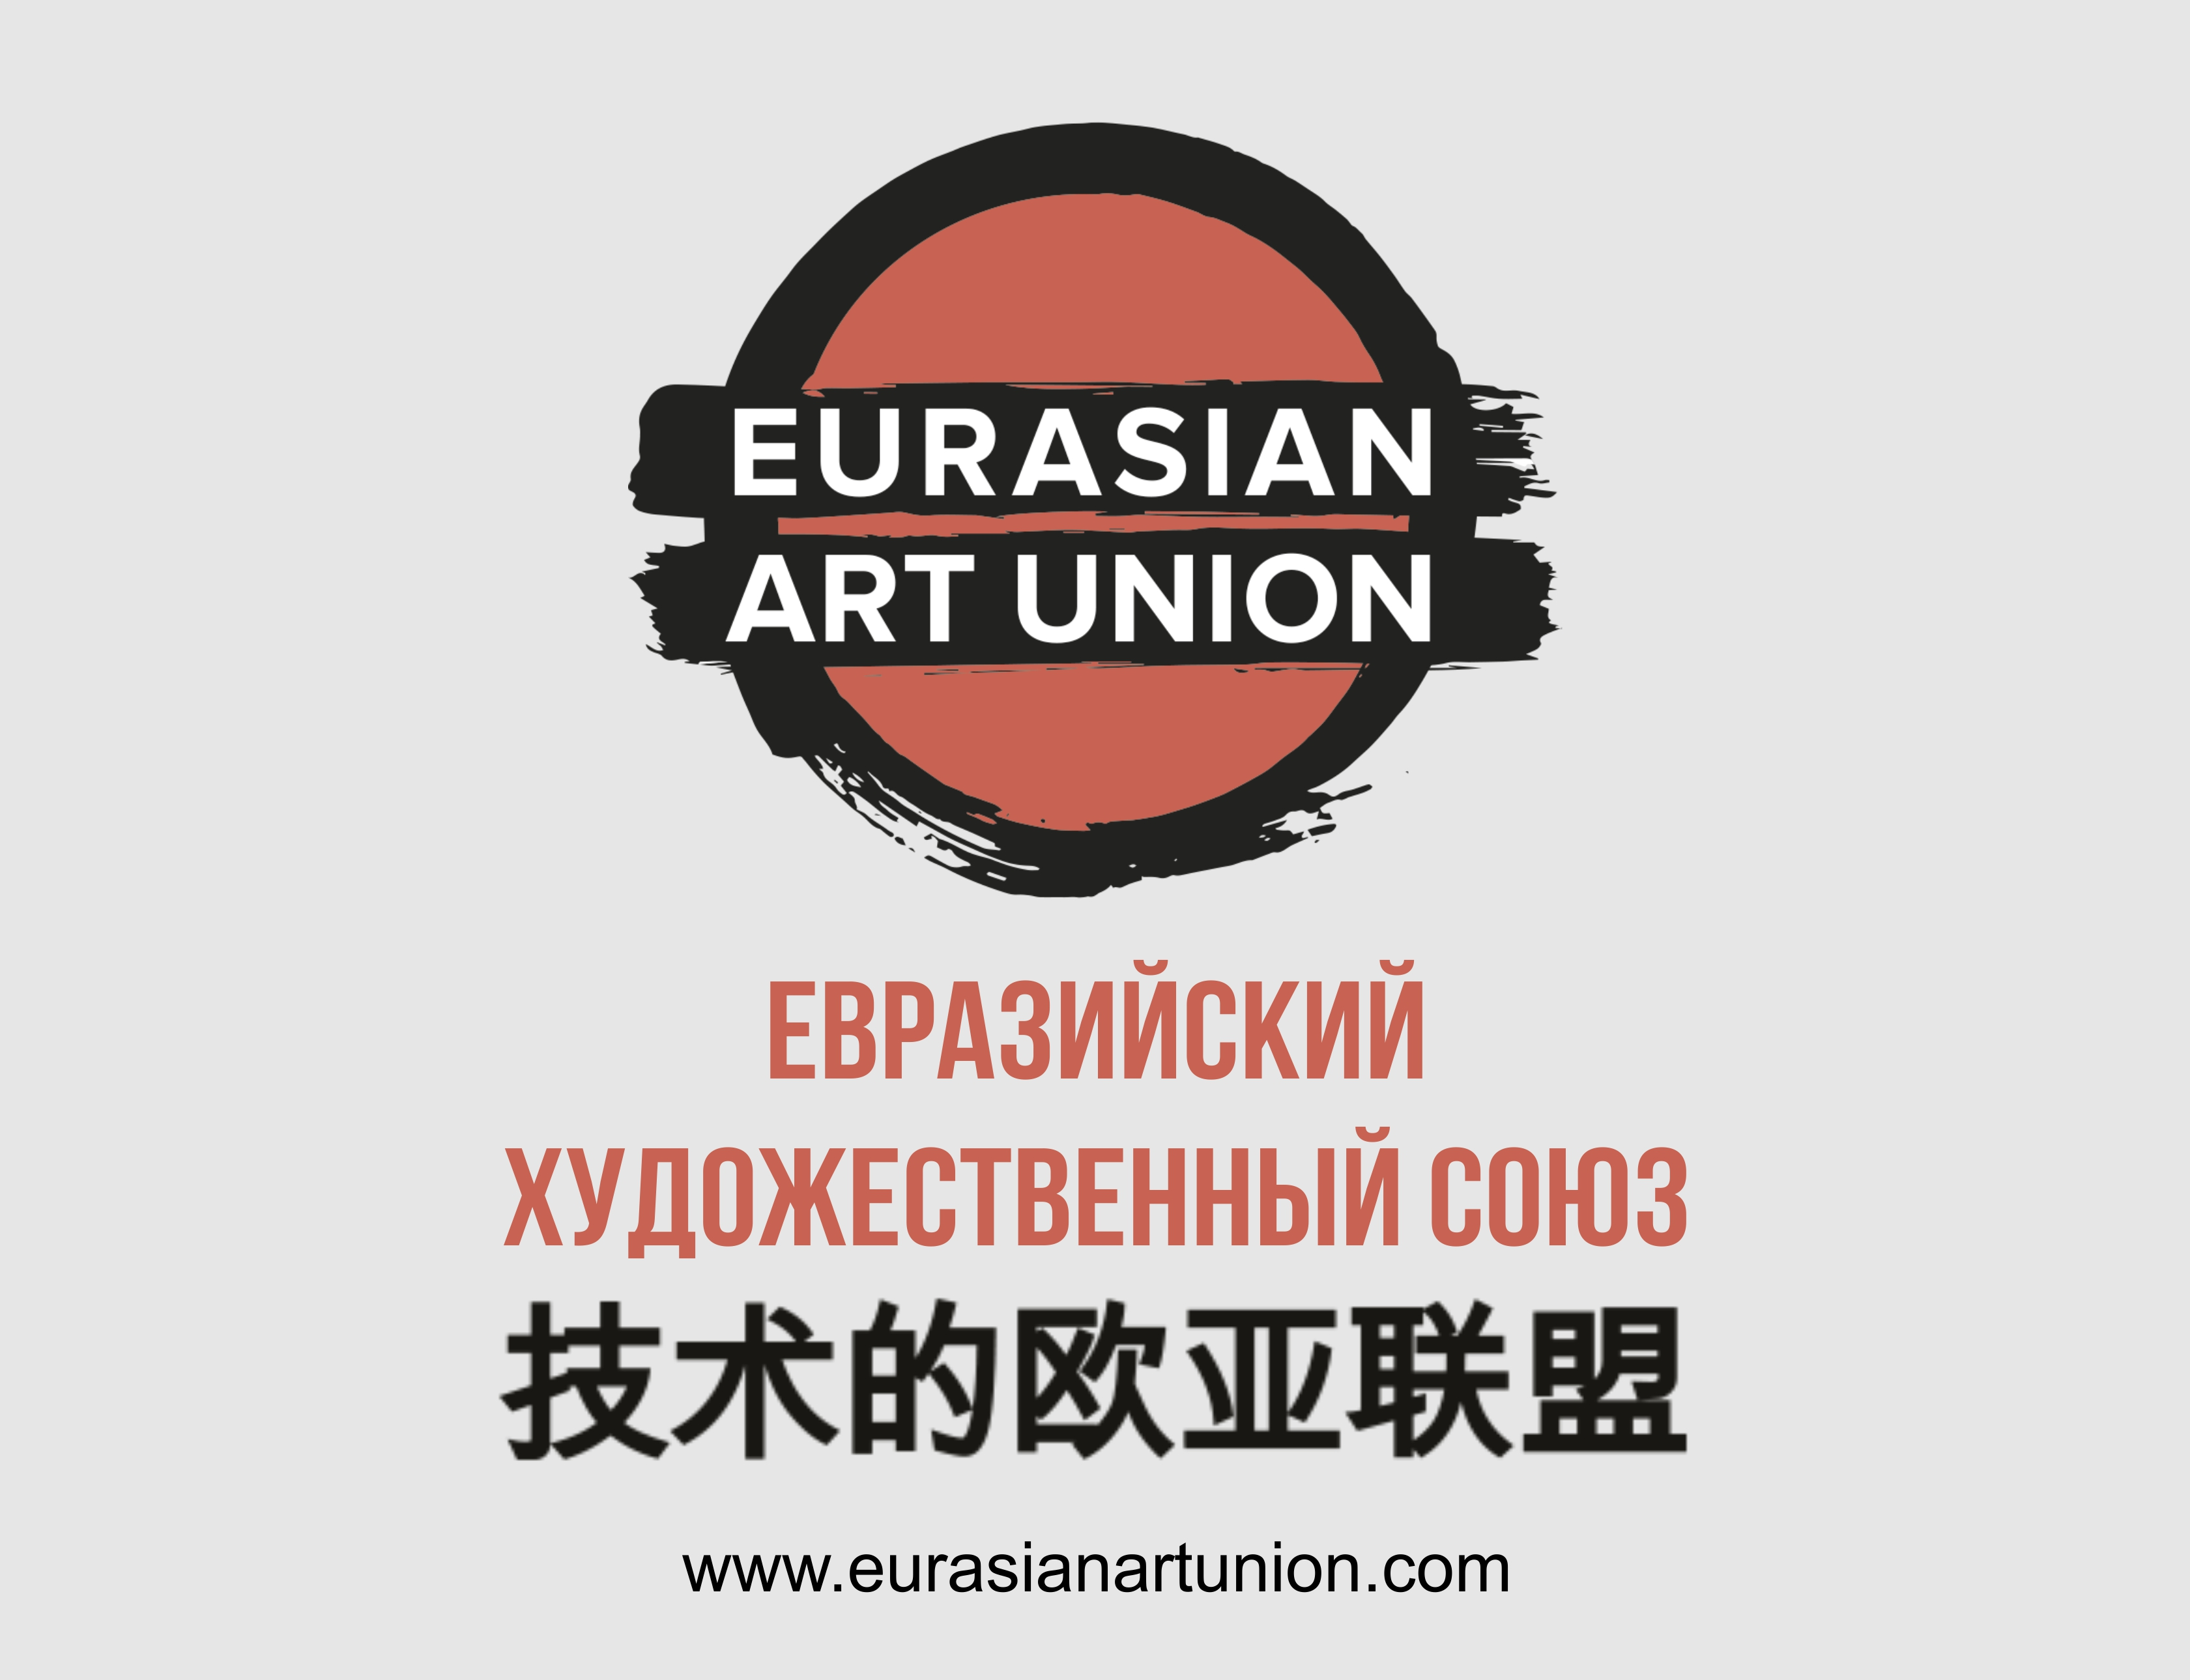 Logo Eurasian Art Union 2